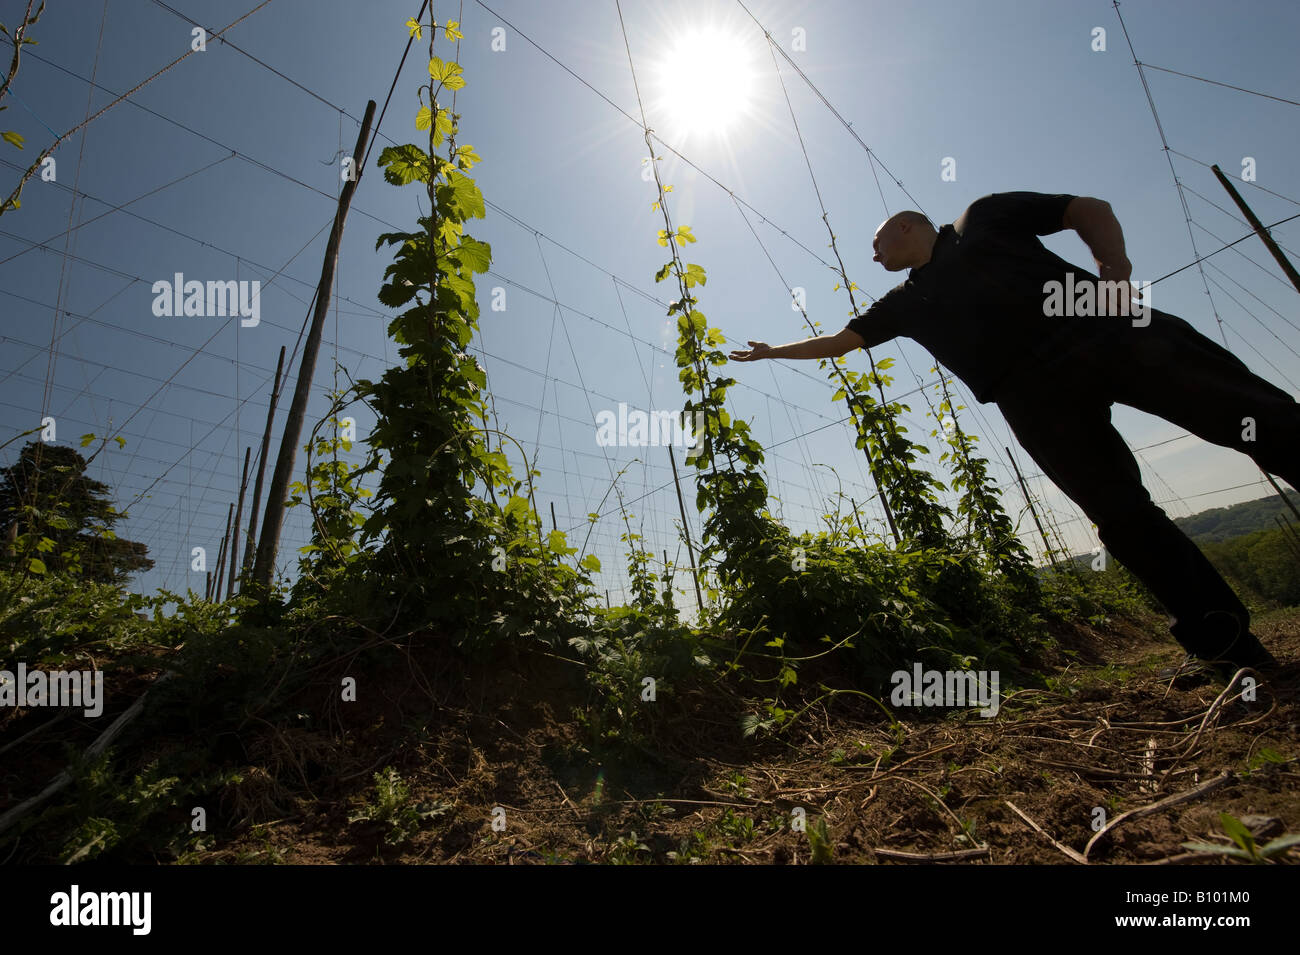 A farmworker looks over young Hop Bines / Vines as they climb the trellis they are attached to in the brilliant - Stock Image